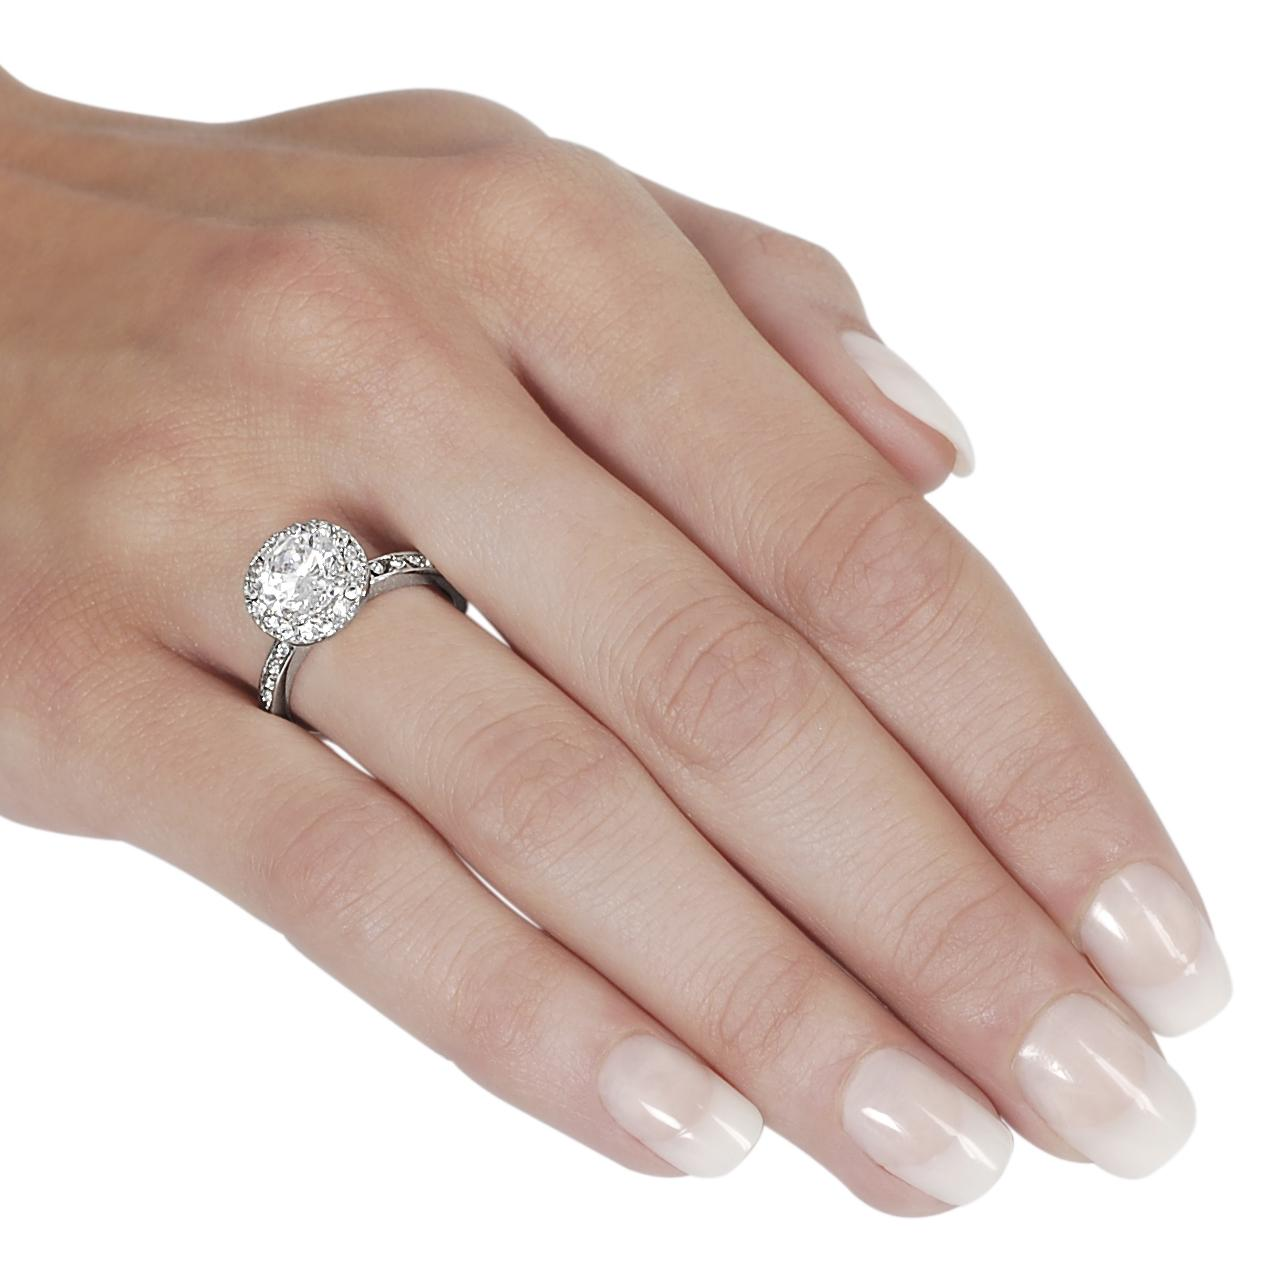 Journee Collection Silvertone Pave-set Round-cut CZ Ring - Thumbnail 2